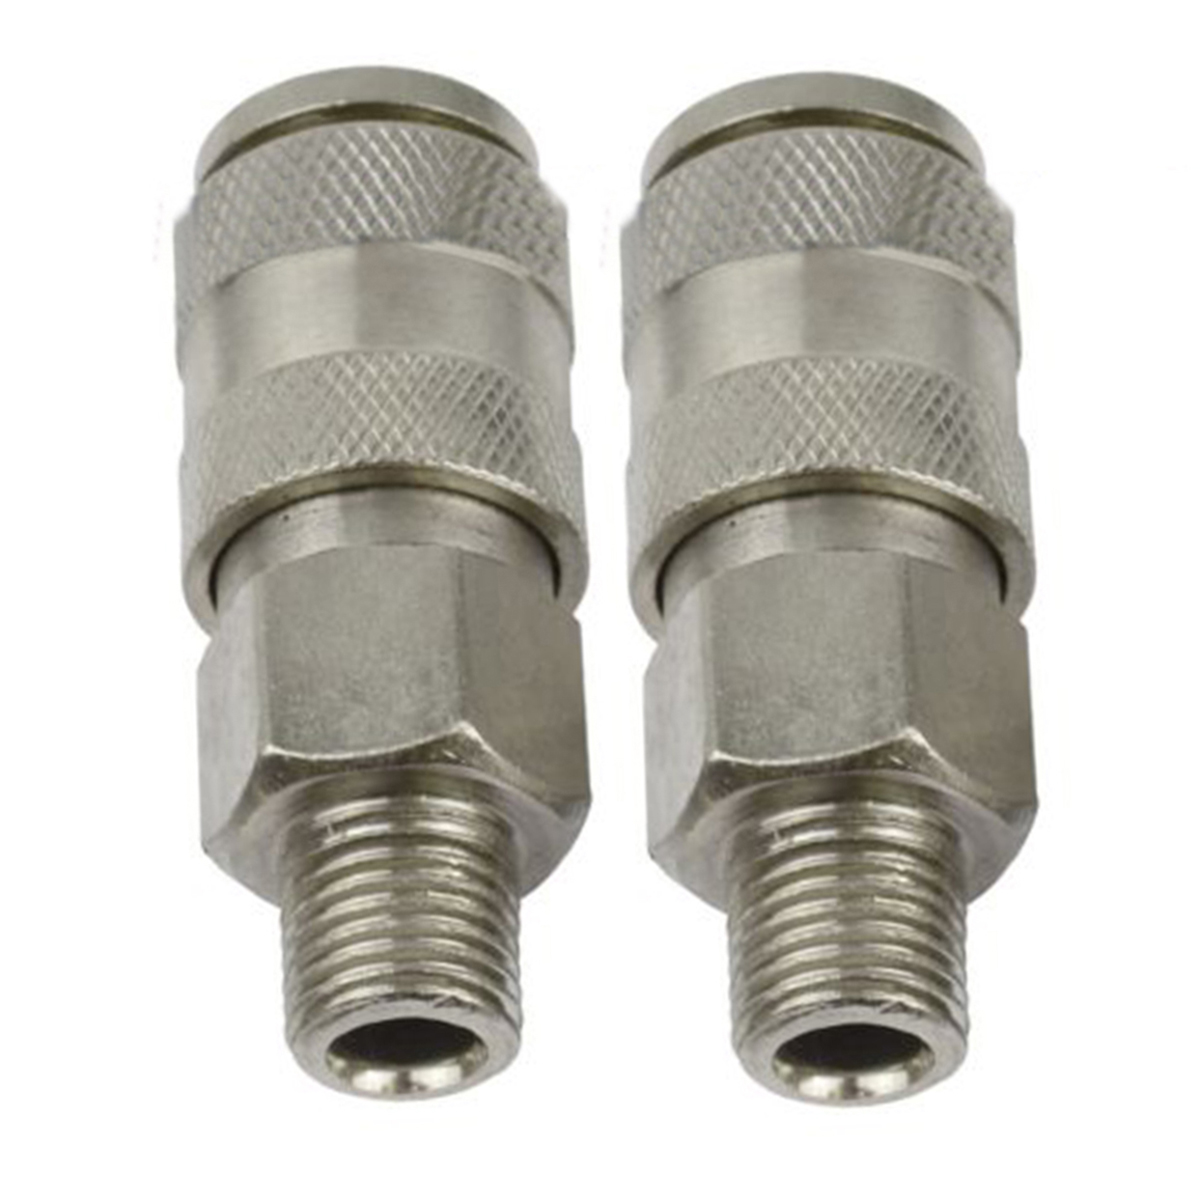 2pcs Pneumatic Parts Air Line Hose Connector Euro Fitting Female Quick Release Set with 1/4 BSP Male Thread pneumatic fittings female male air line hose compressor fitting connector quick release coupler set pneumatic parts